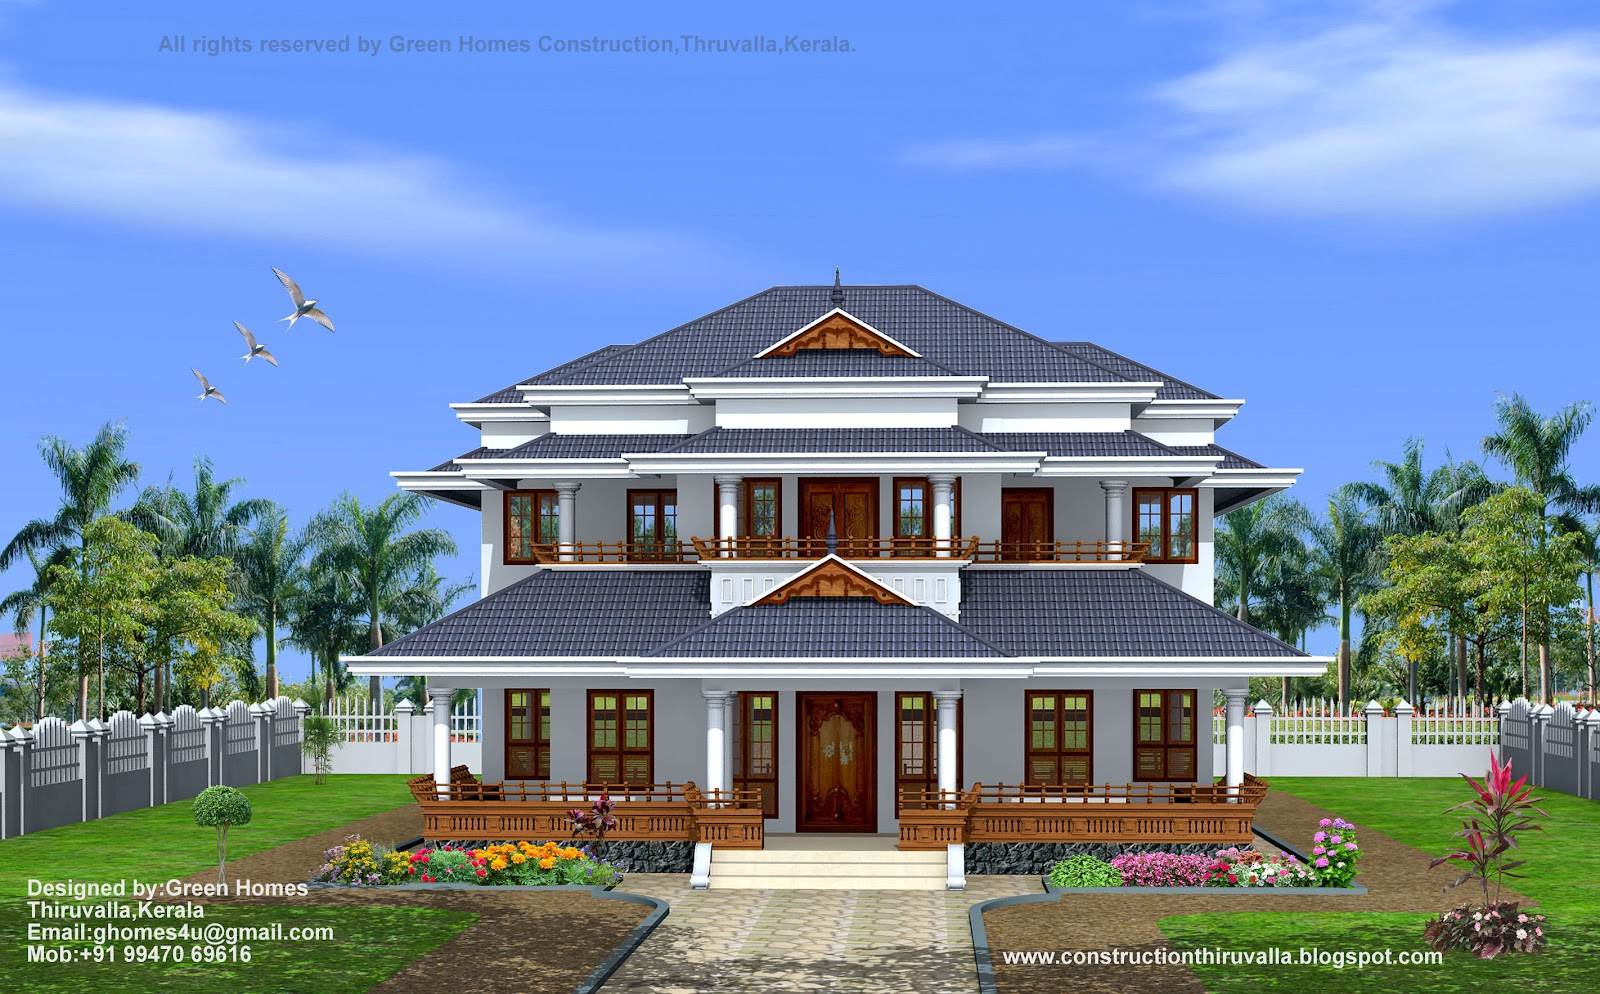 Green homes traditional style kerala home design 3450 sq feet Best home designs of 2014